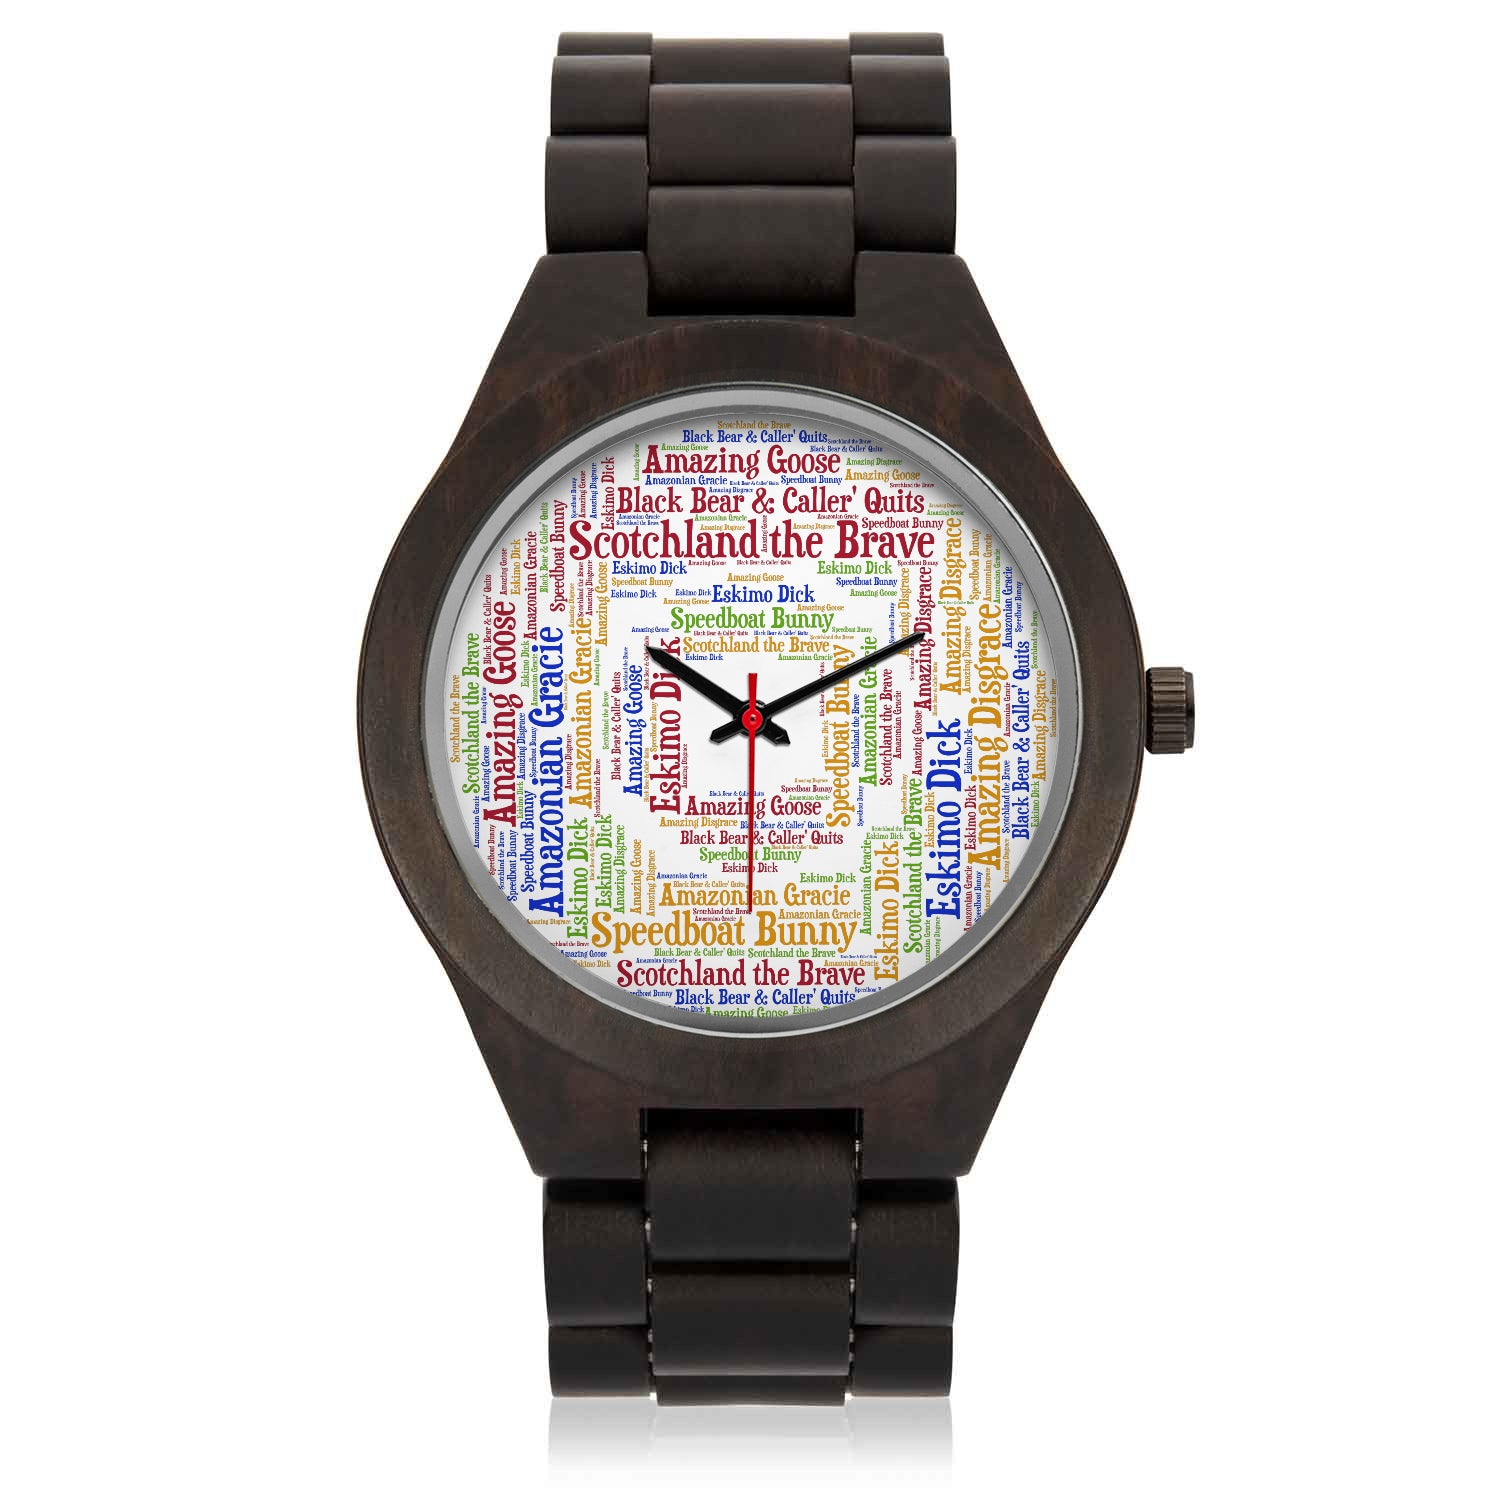 Wooden Watch w/ Epic Chunes